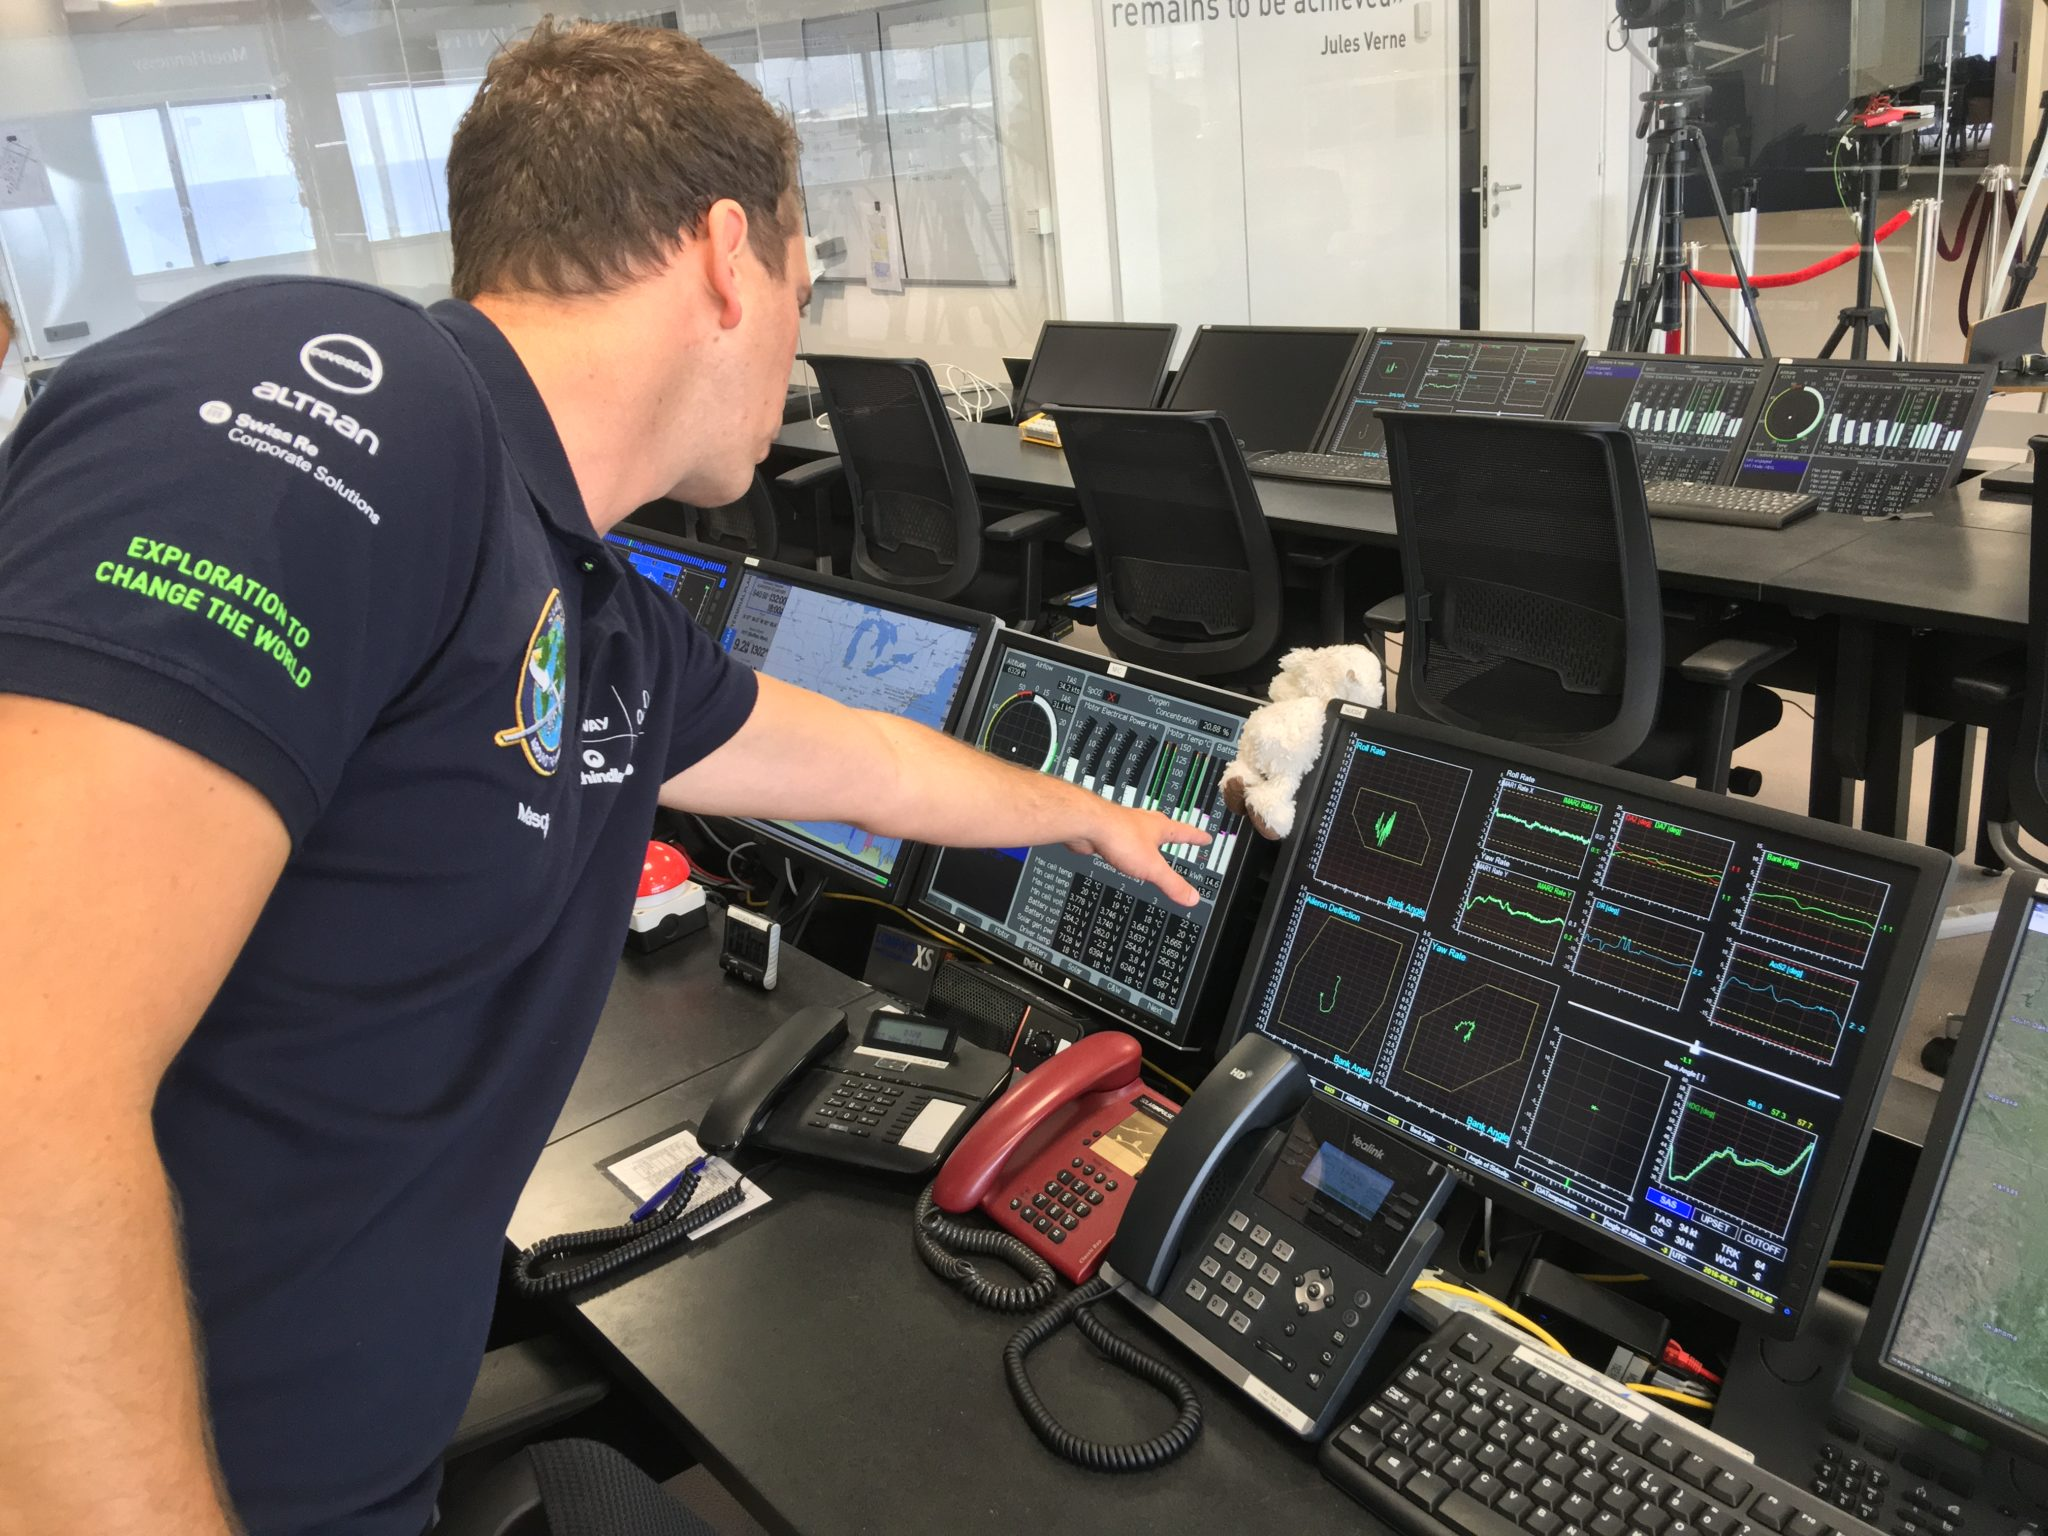 Solar Impulse's Monaco Control Center analyses and acts on a huge number of data points. Image: John Walton